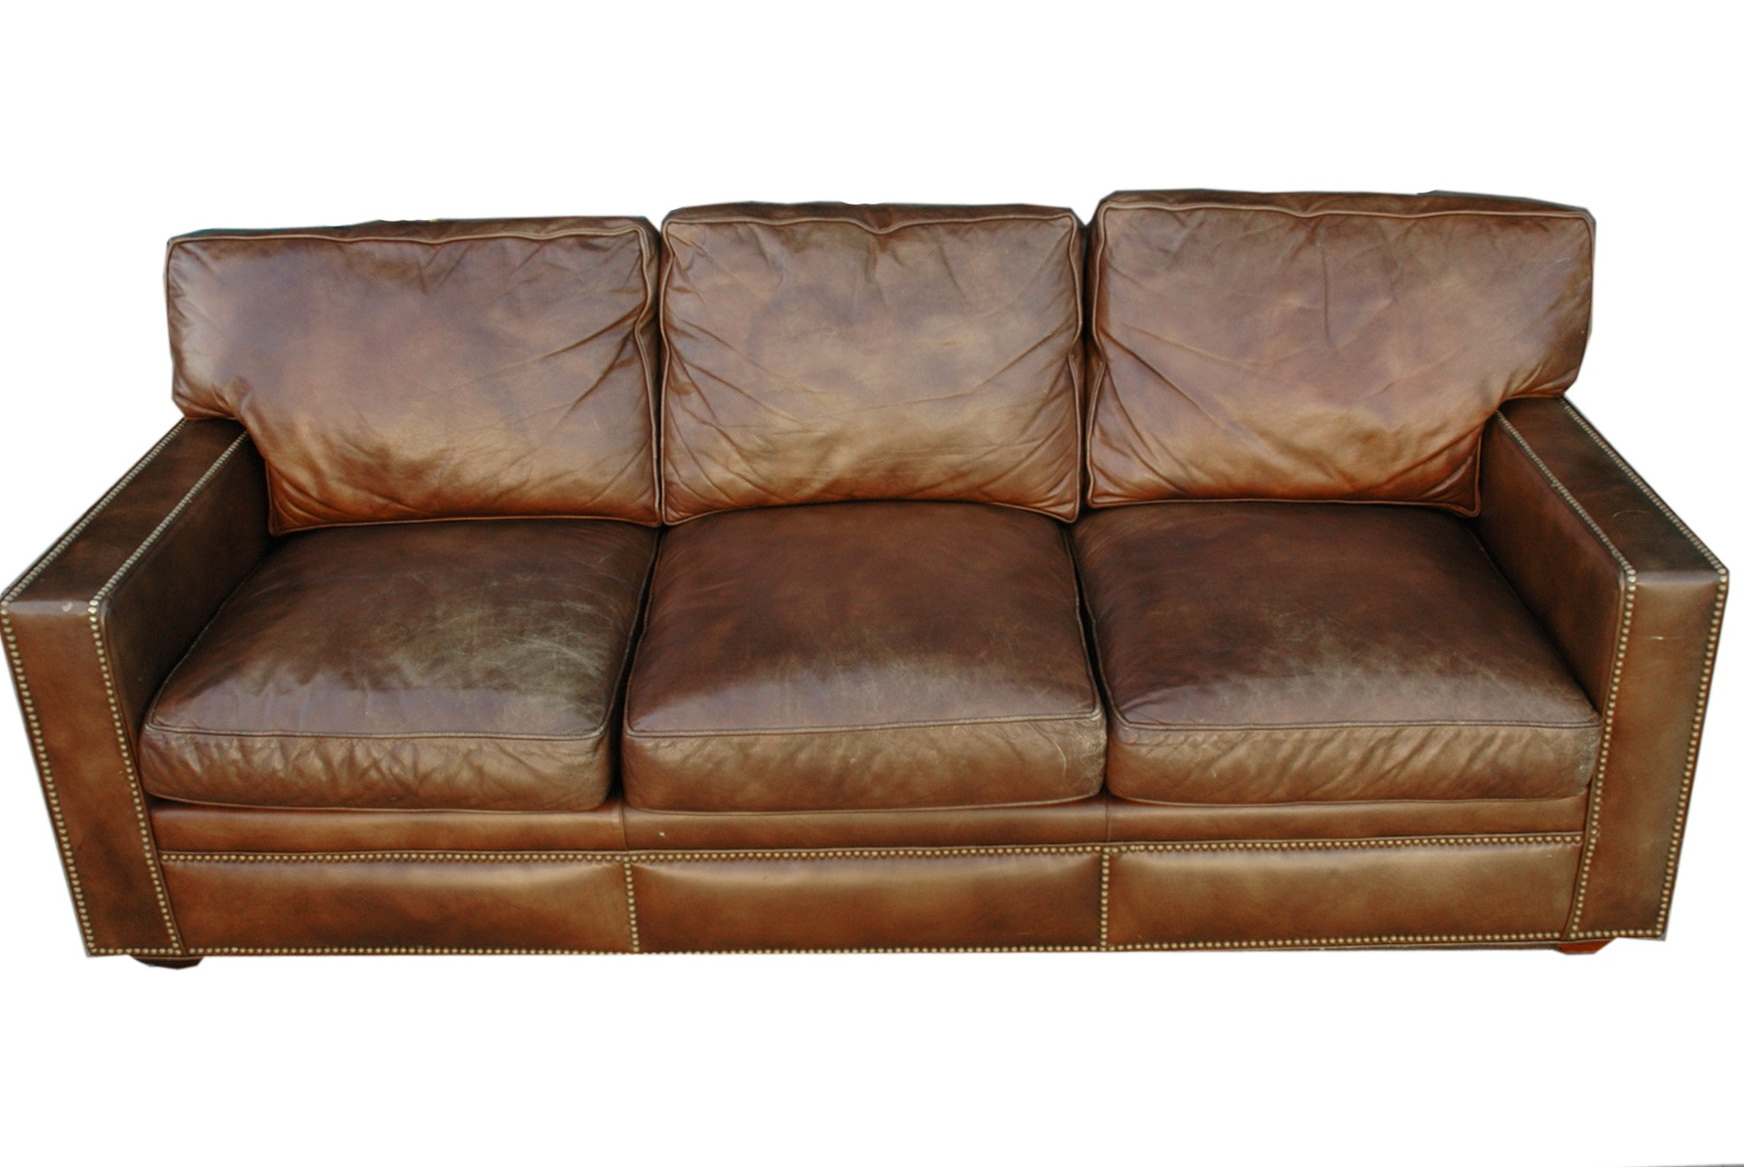 Distressed Leather Sofa Brown